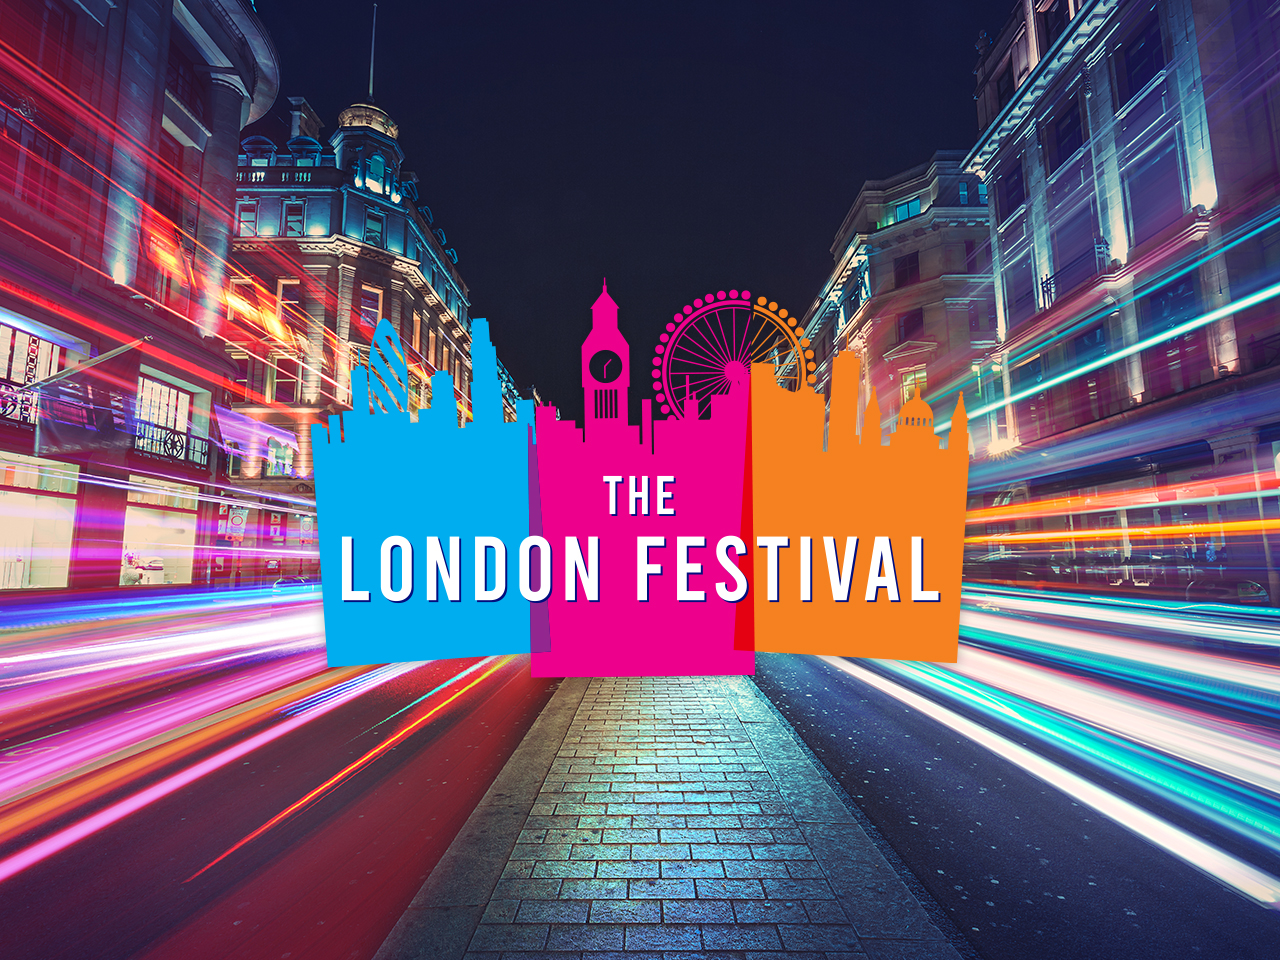 The London Festival: Extravaganza of Entertainment, History and Cultural celebration planned for 2023